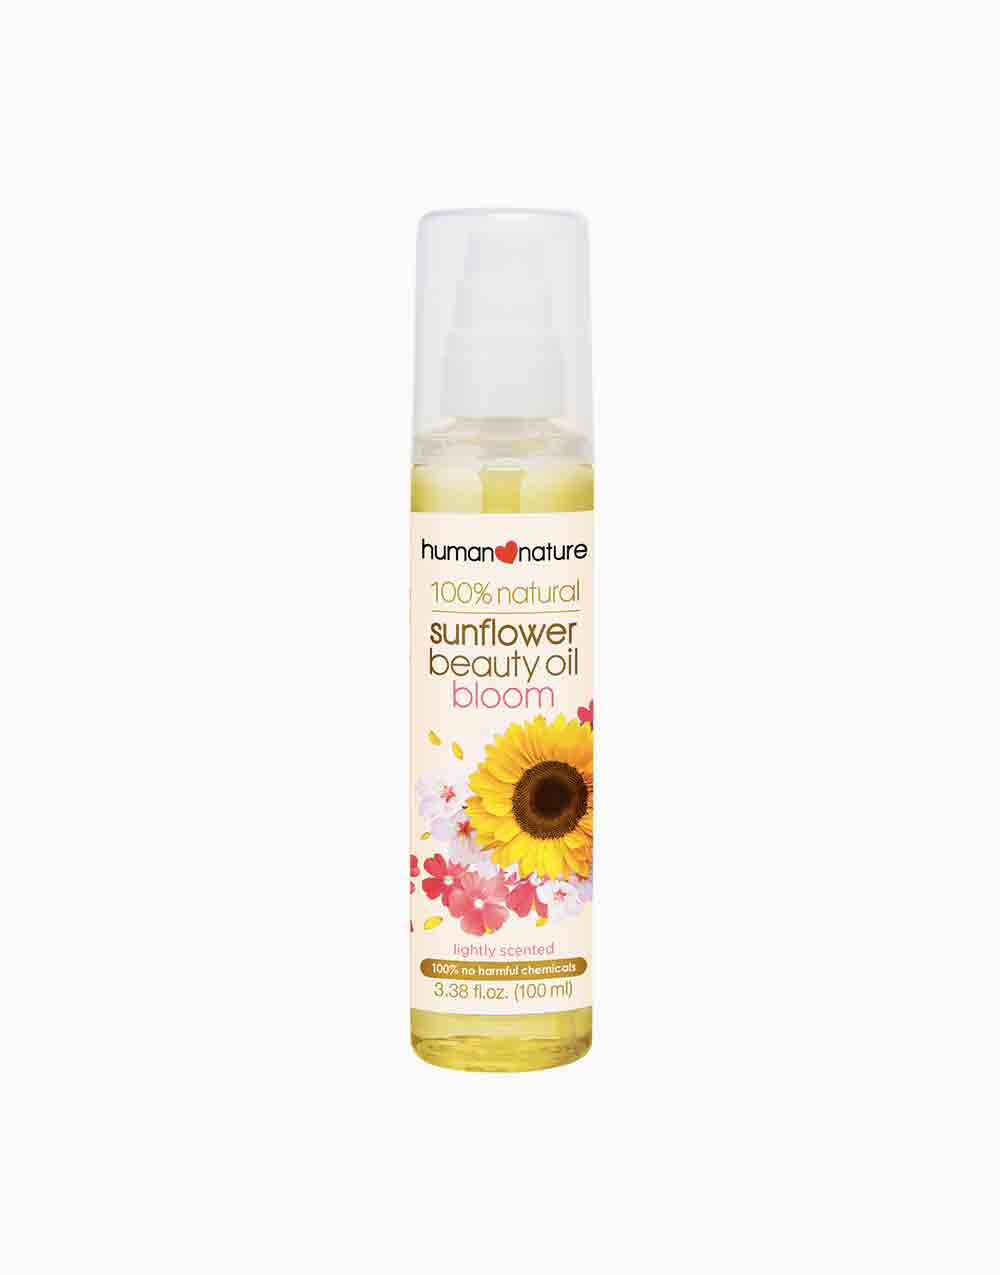 100% Natural Sunflower Beauty Oil BLOOM Lightly Scented (100ml) by Human Nature